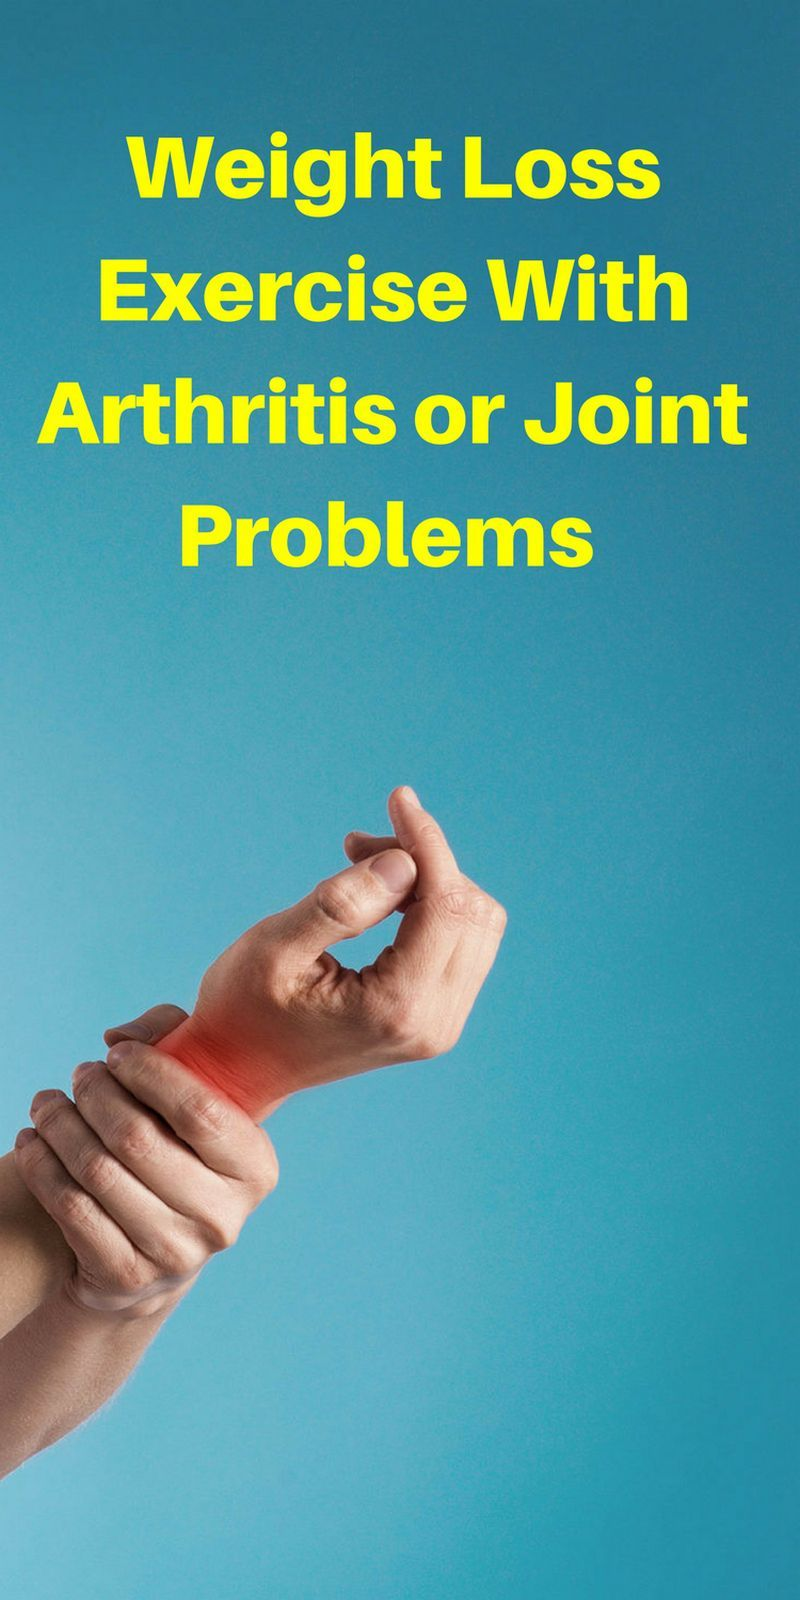 Weight loss exercising with arthritis or joint problems is not easy